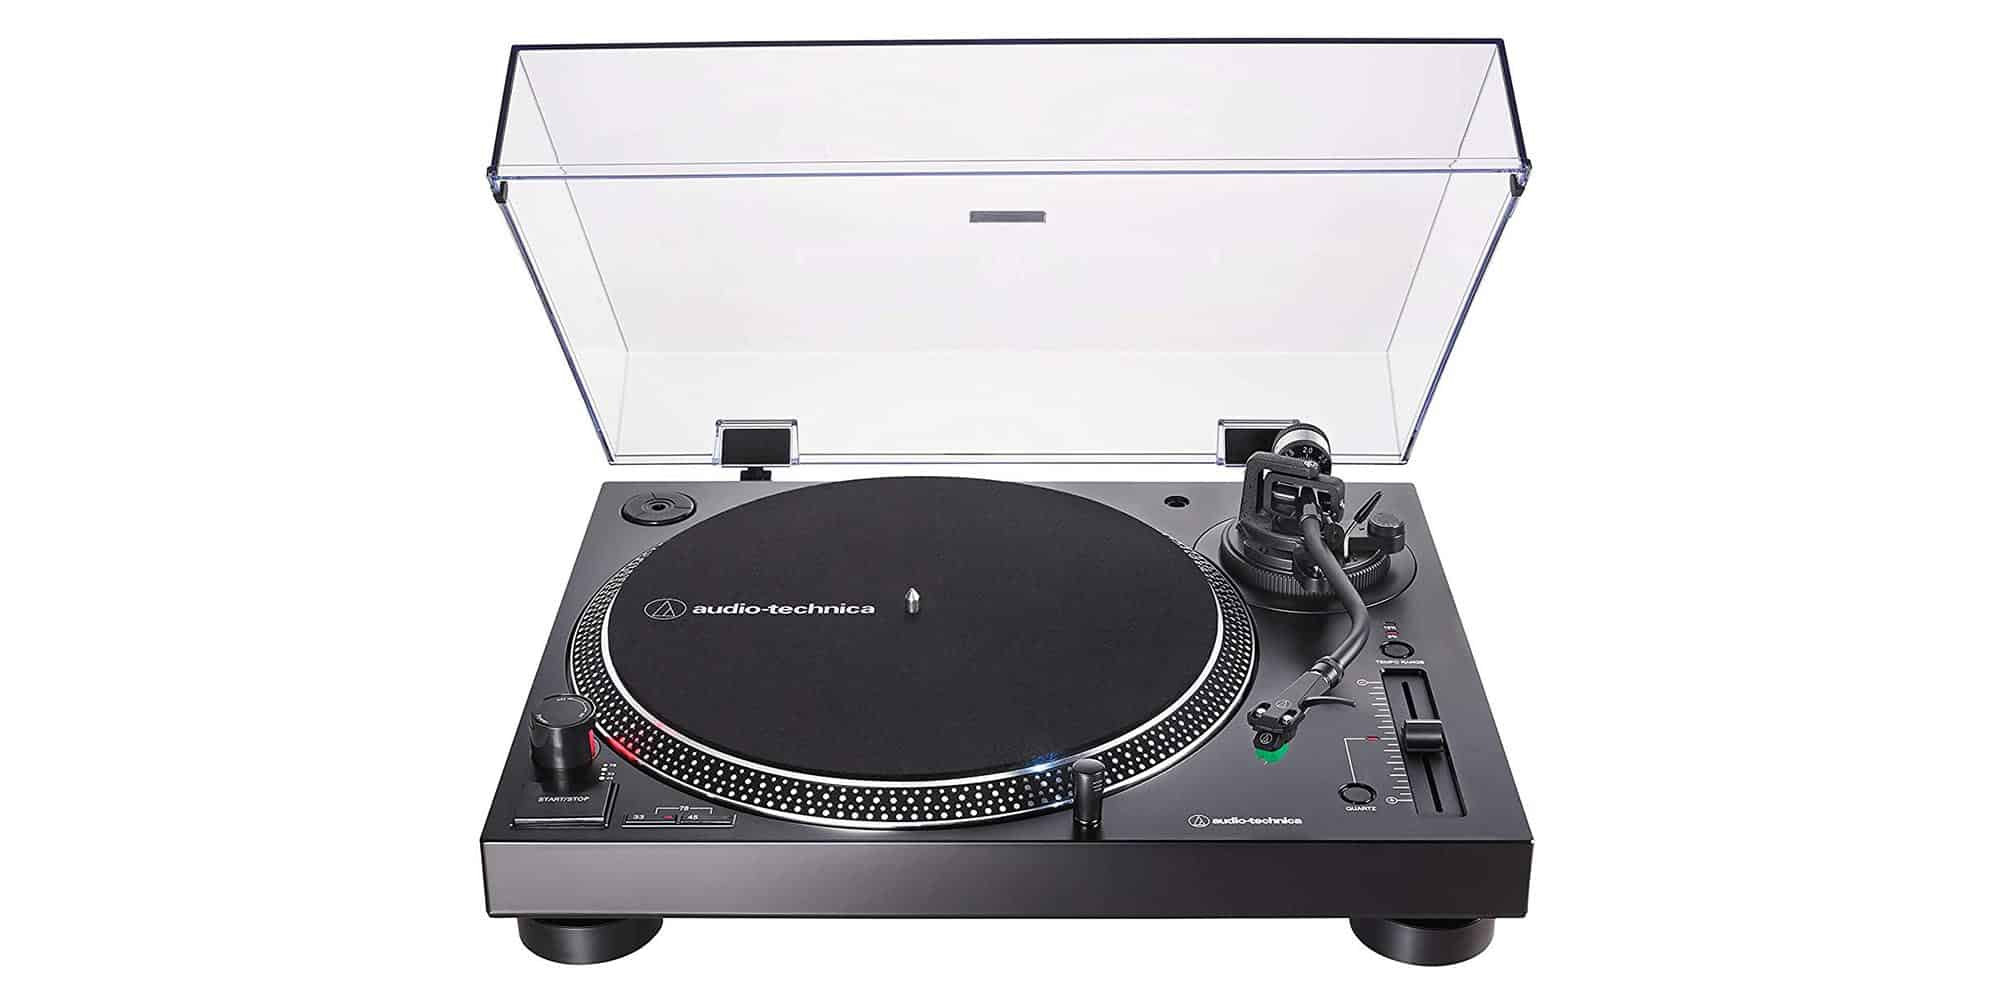 audio technica lp120x review featured image